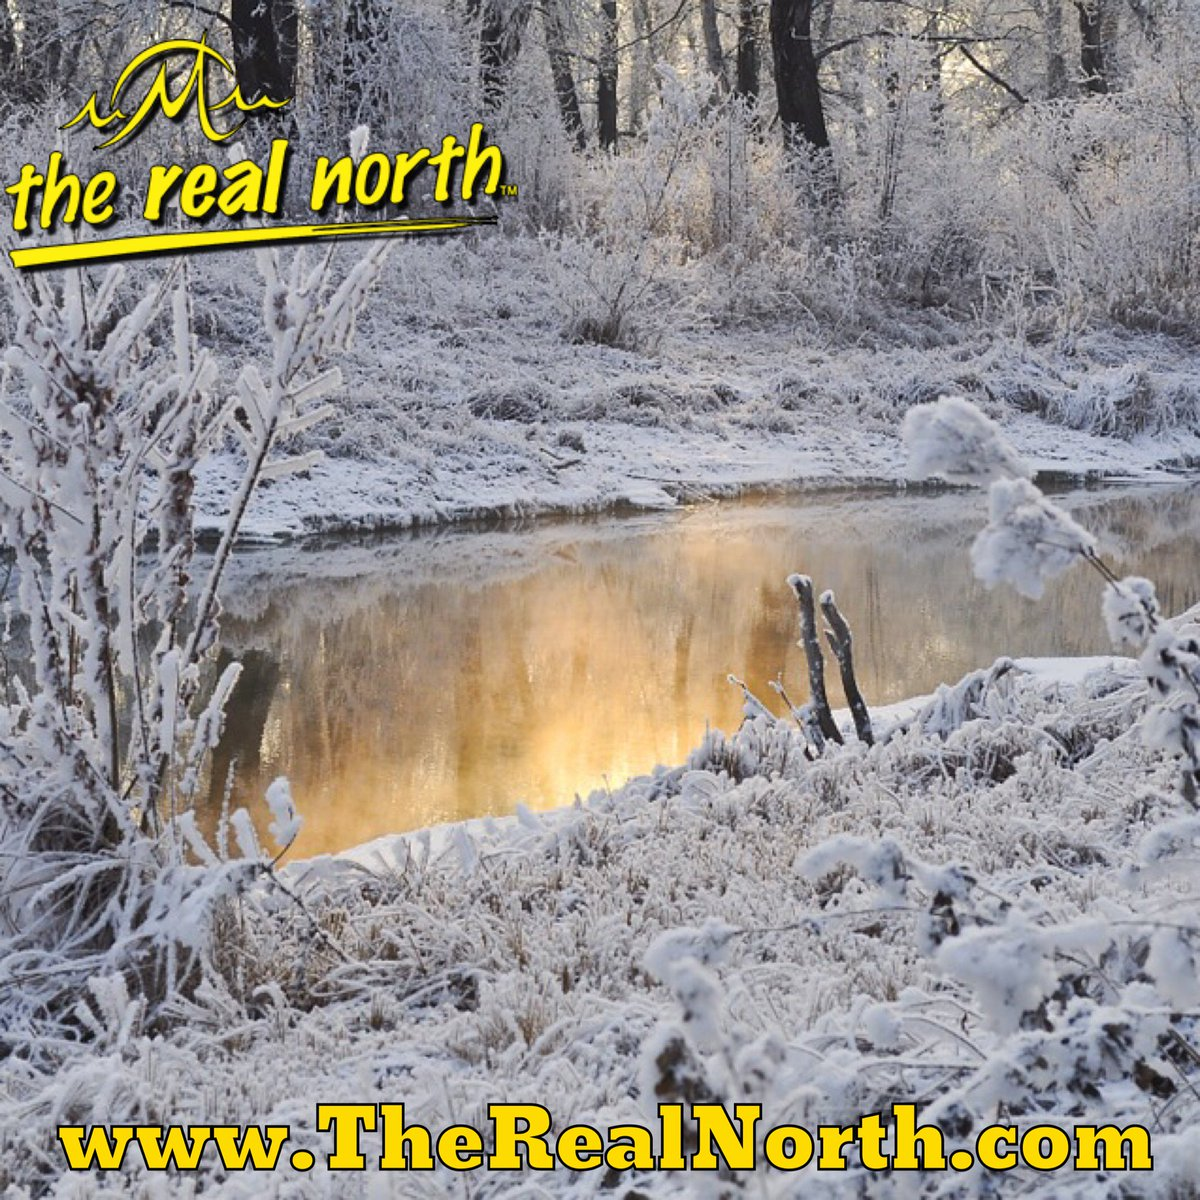 Winter Adventure Happens Here in Marinette County! #Marinette <br>http://pic.twitter.com/5nc4Xmt2dr